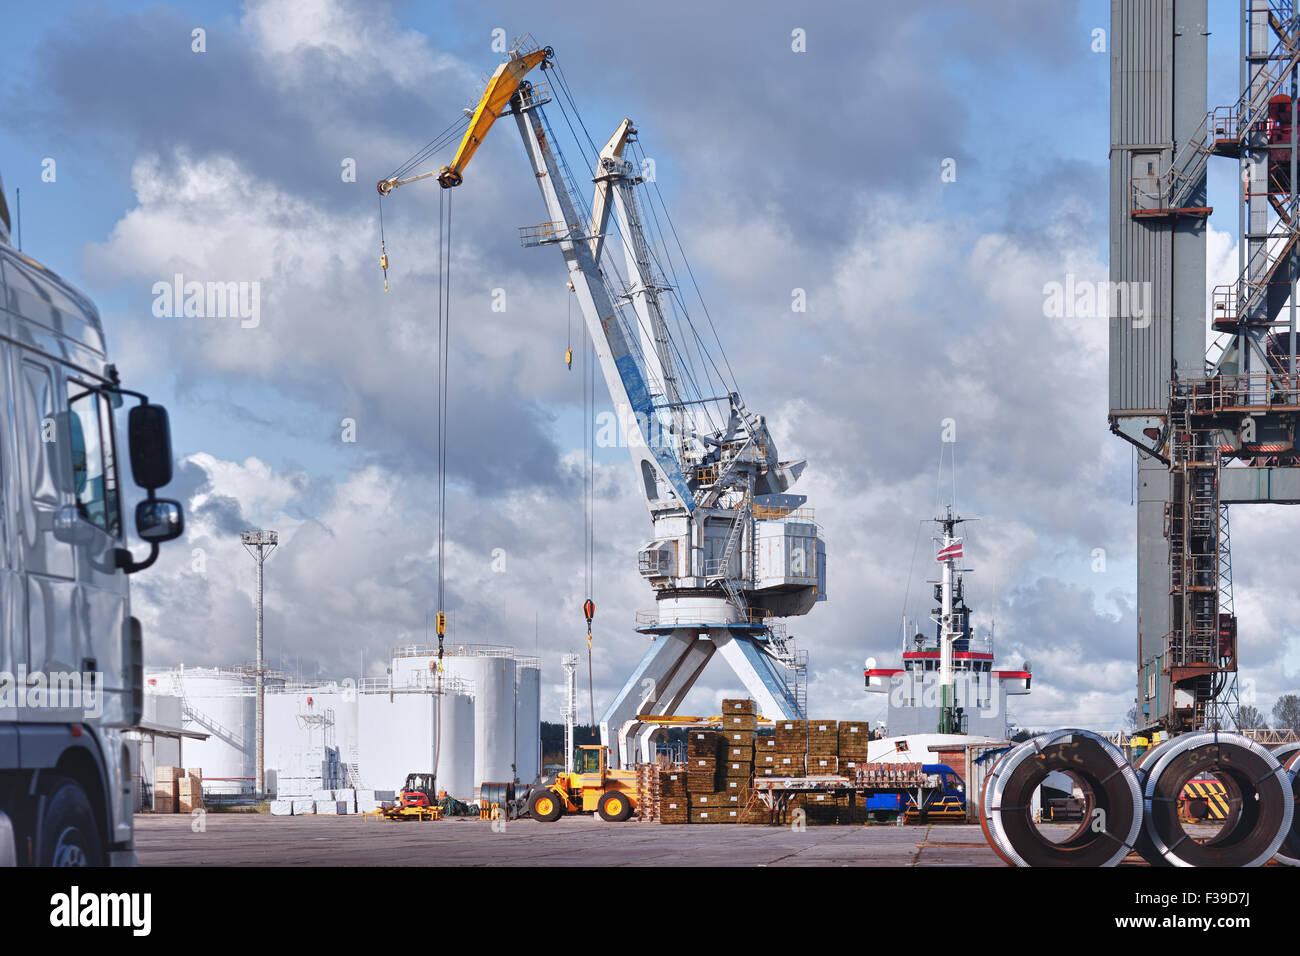 Cranes and ships in the port of the machines and forklifts for loading and unloading on a sunny summer day - Stock Image